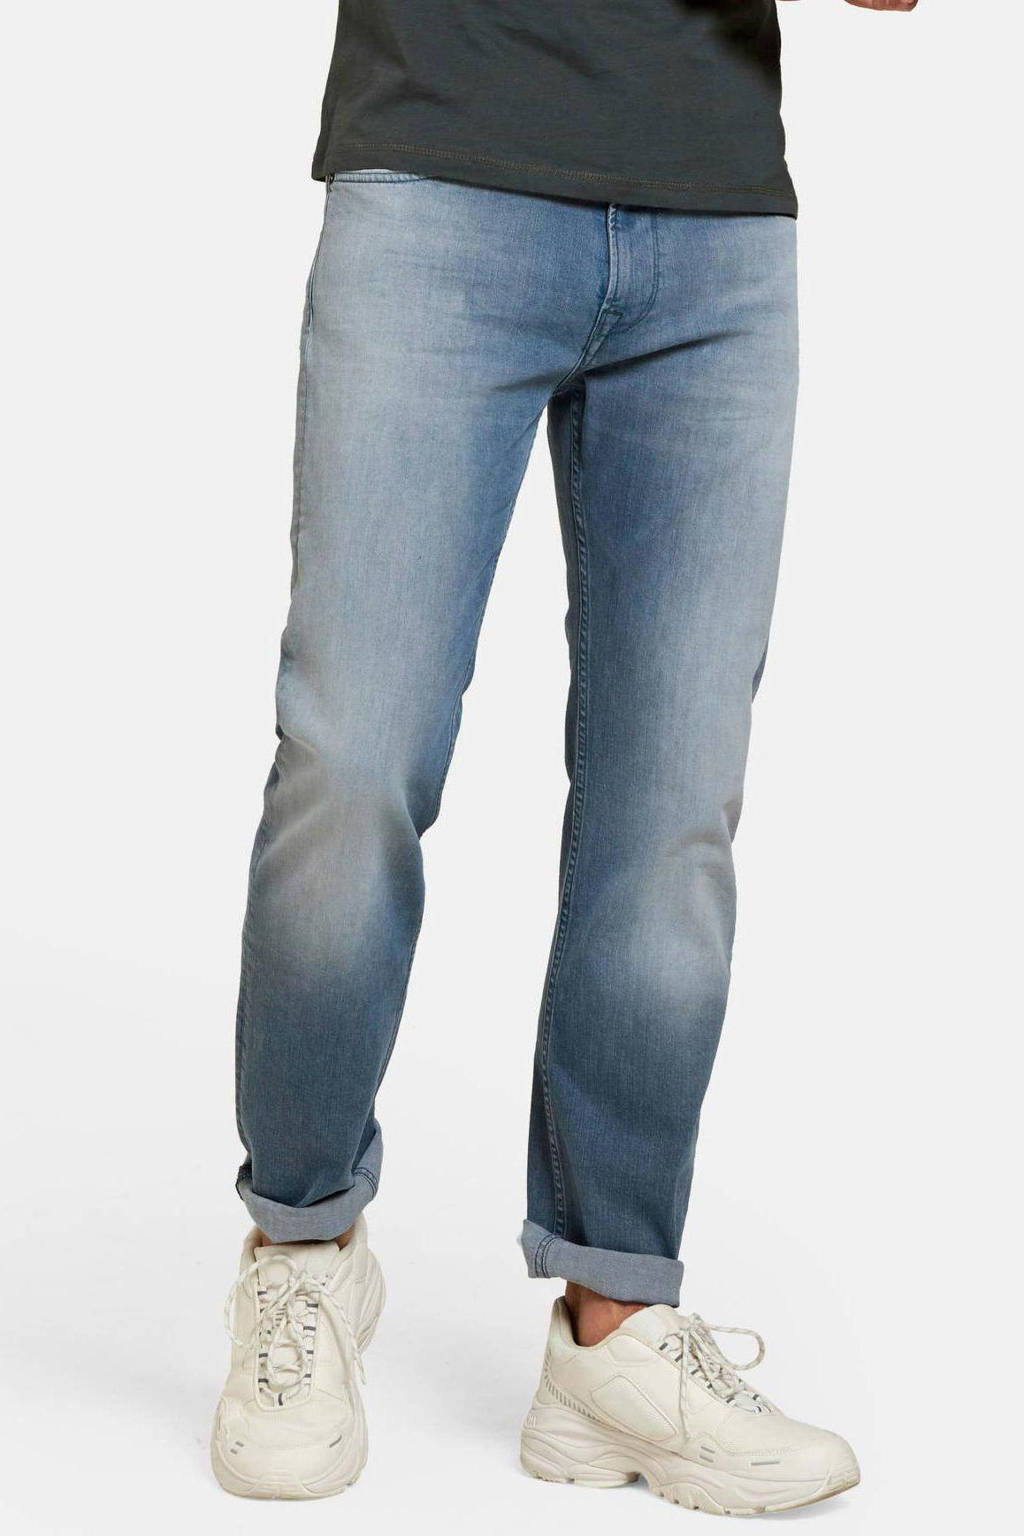 Refill by Shoeby straight fit jeans Lewis Sault FANTASY, Fantasy